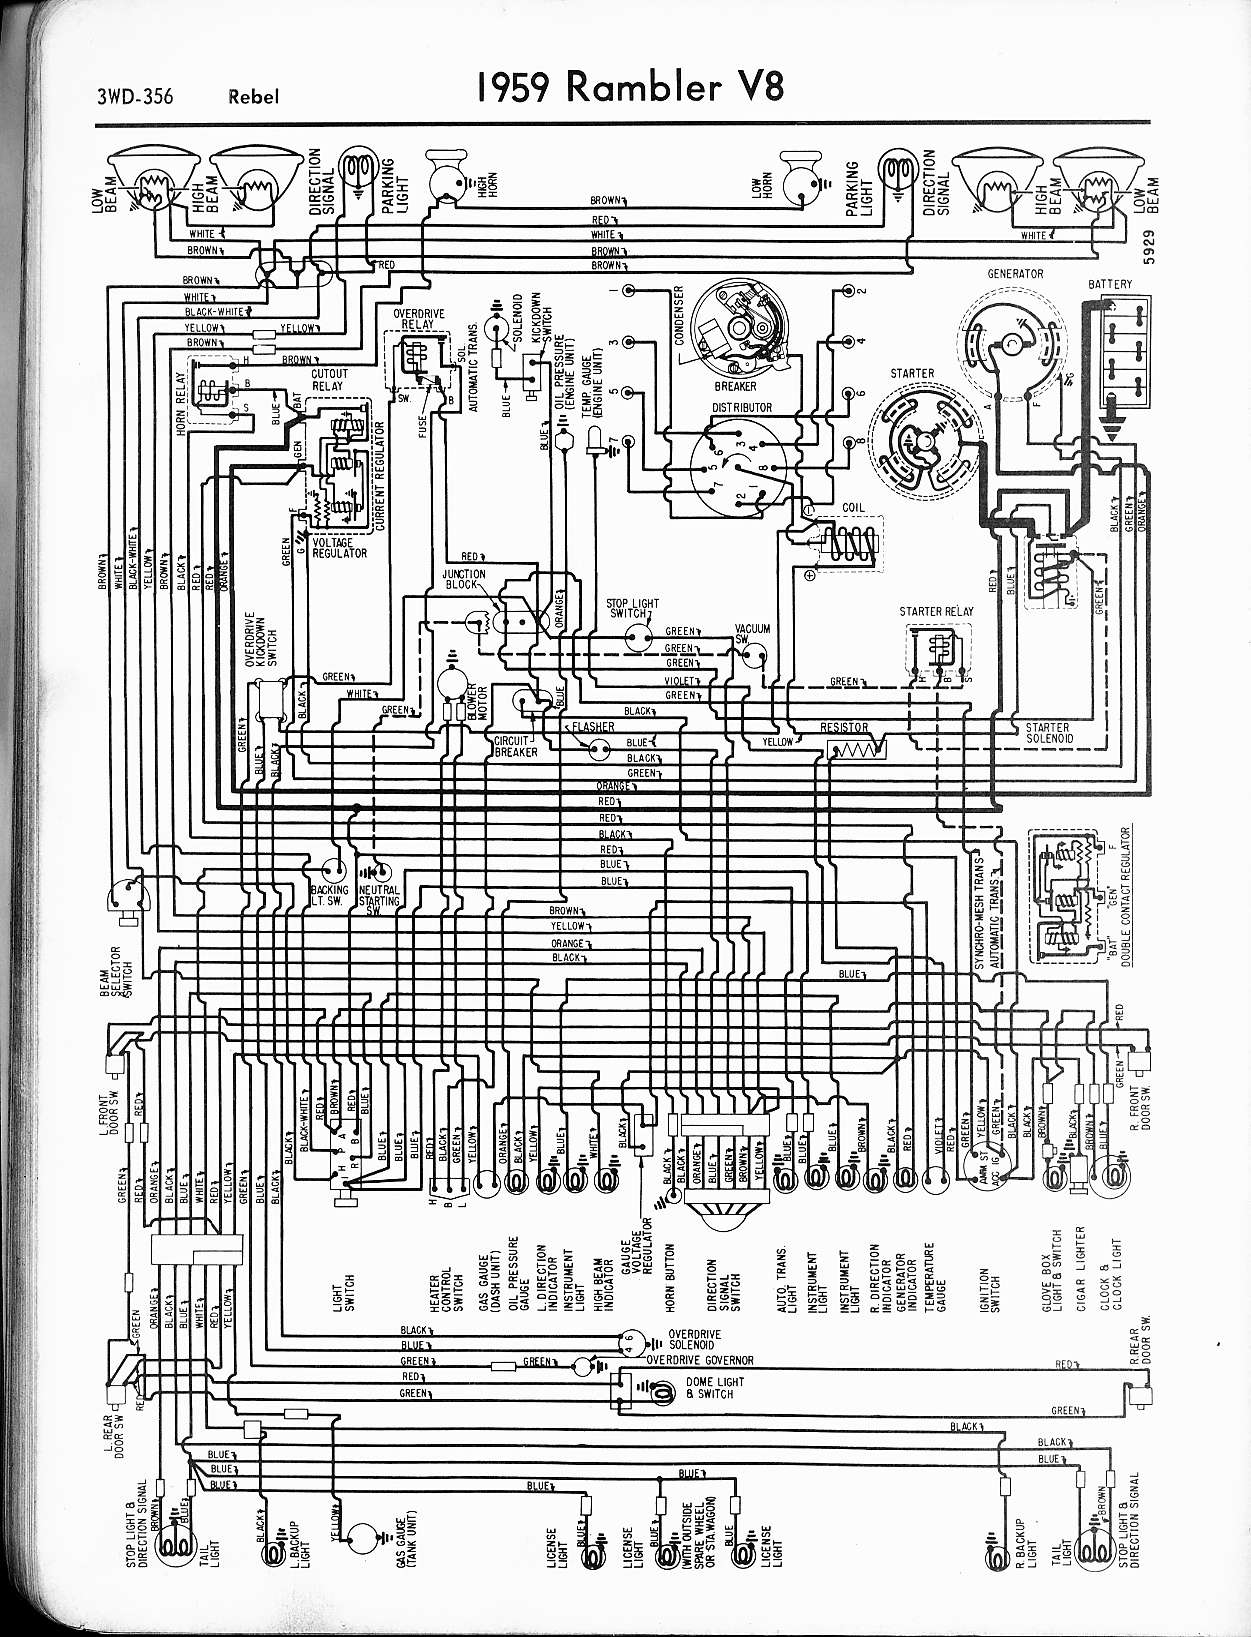 MWire5765 356 1967 amc rebel wiring diagram wiring diagram shrutiradio amc rebel wiring diagram at gsmportal.co